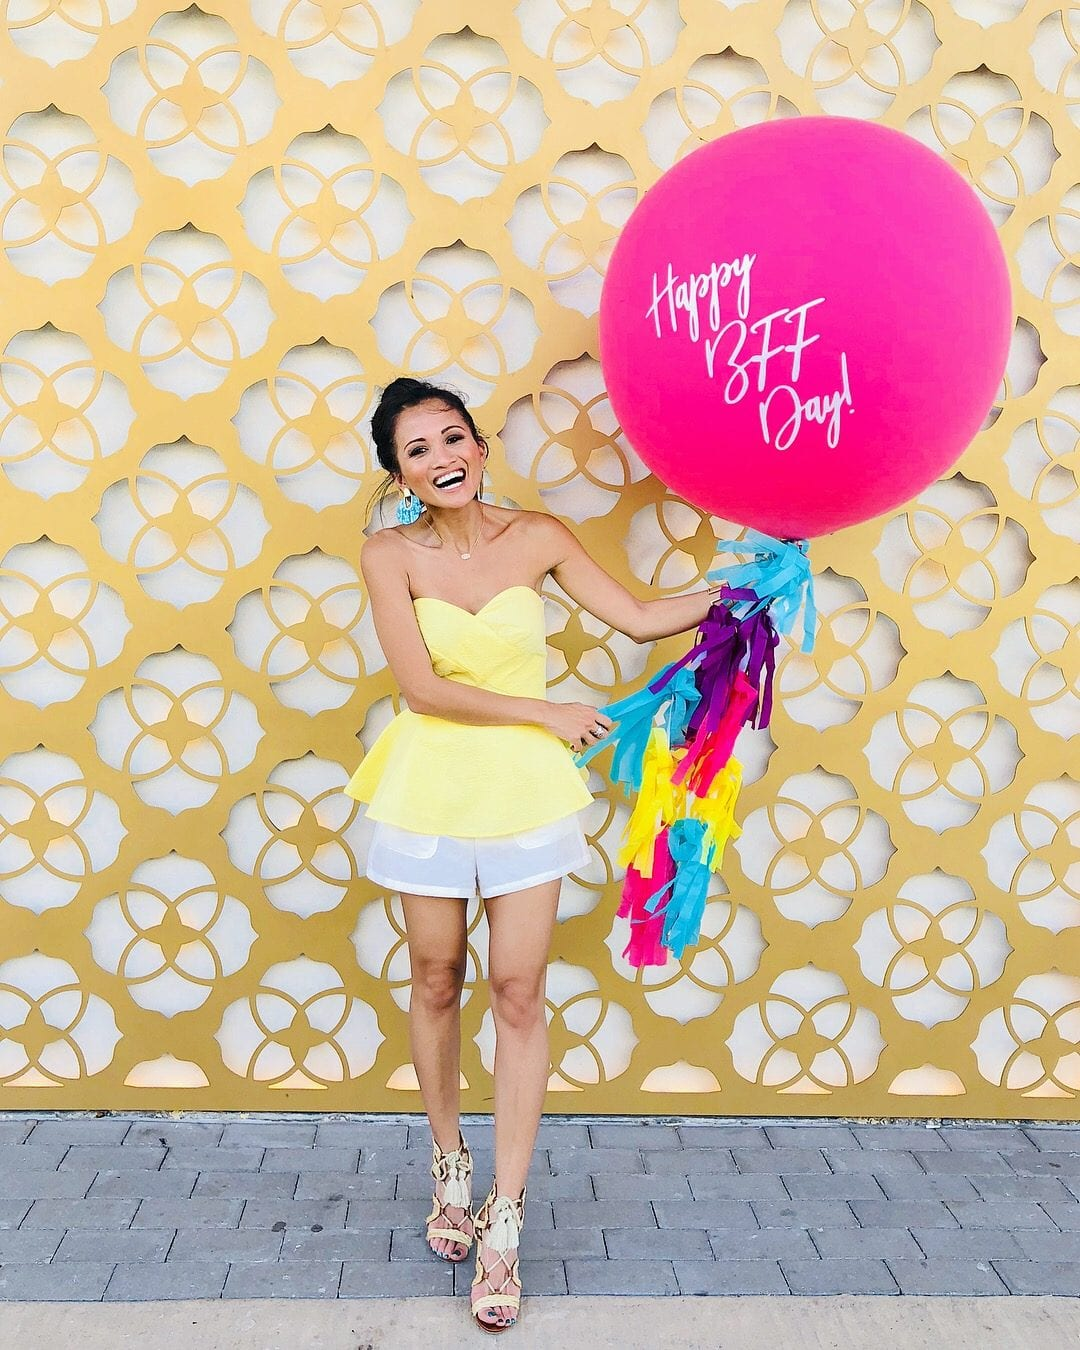 KENDRA SCOTT, FUNDRAISER, #NATIONALBFFDAY, BIG ASS BALLOONS, LAUREN JAMES #SUMMERSTYLE, #SUMMERFASHION, YELLOW PEPLUM TOP, WHITE TIE FRONT SHORTS, LACE UP SANDALS